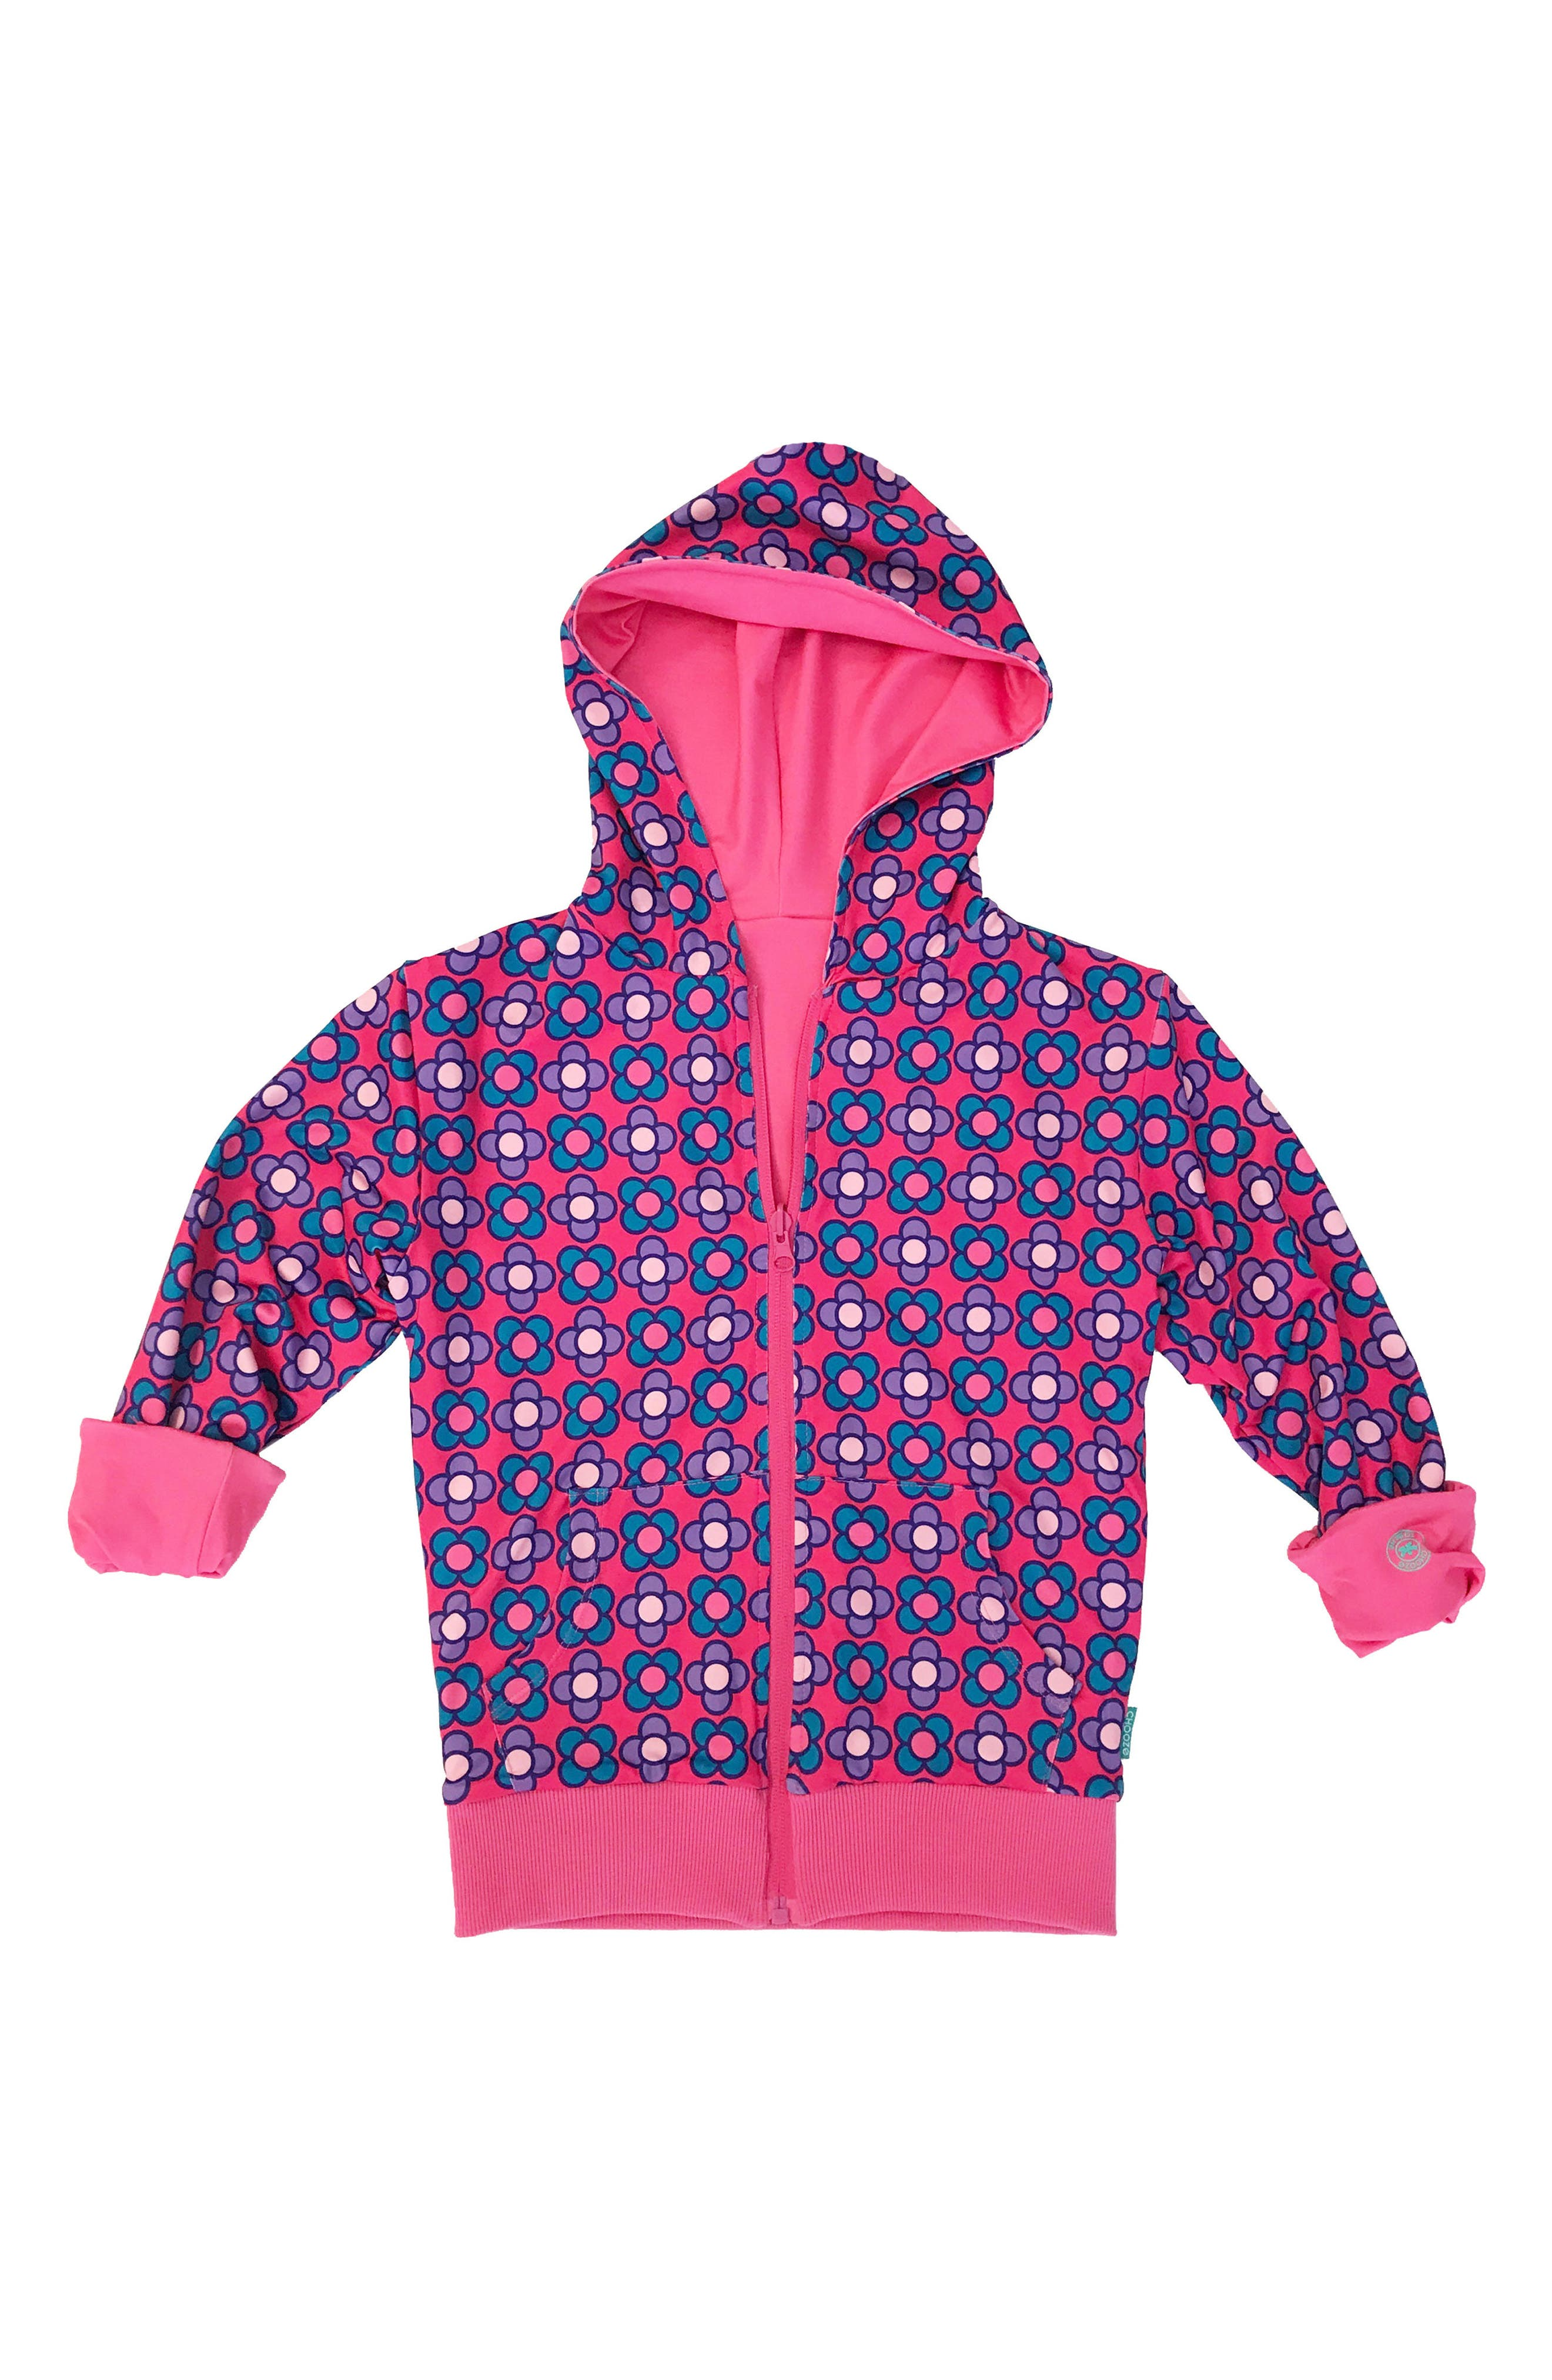 Duo Reversible Zip Hoodie,                             Main thumbnail 1, color,                             Jazzy